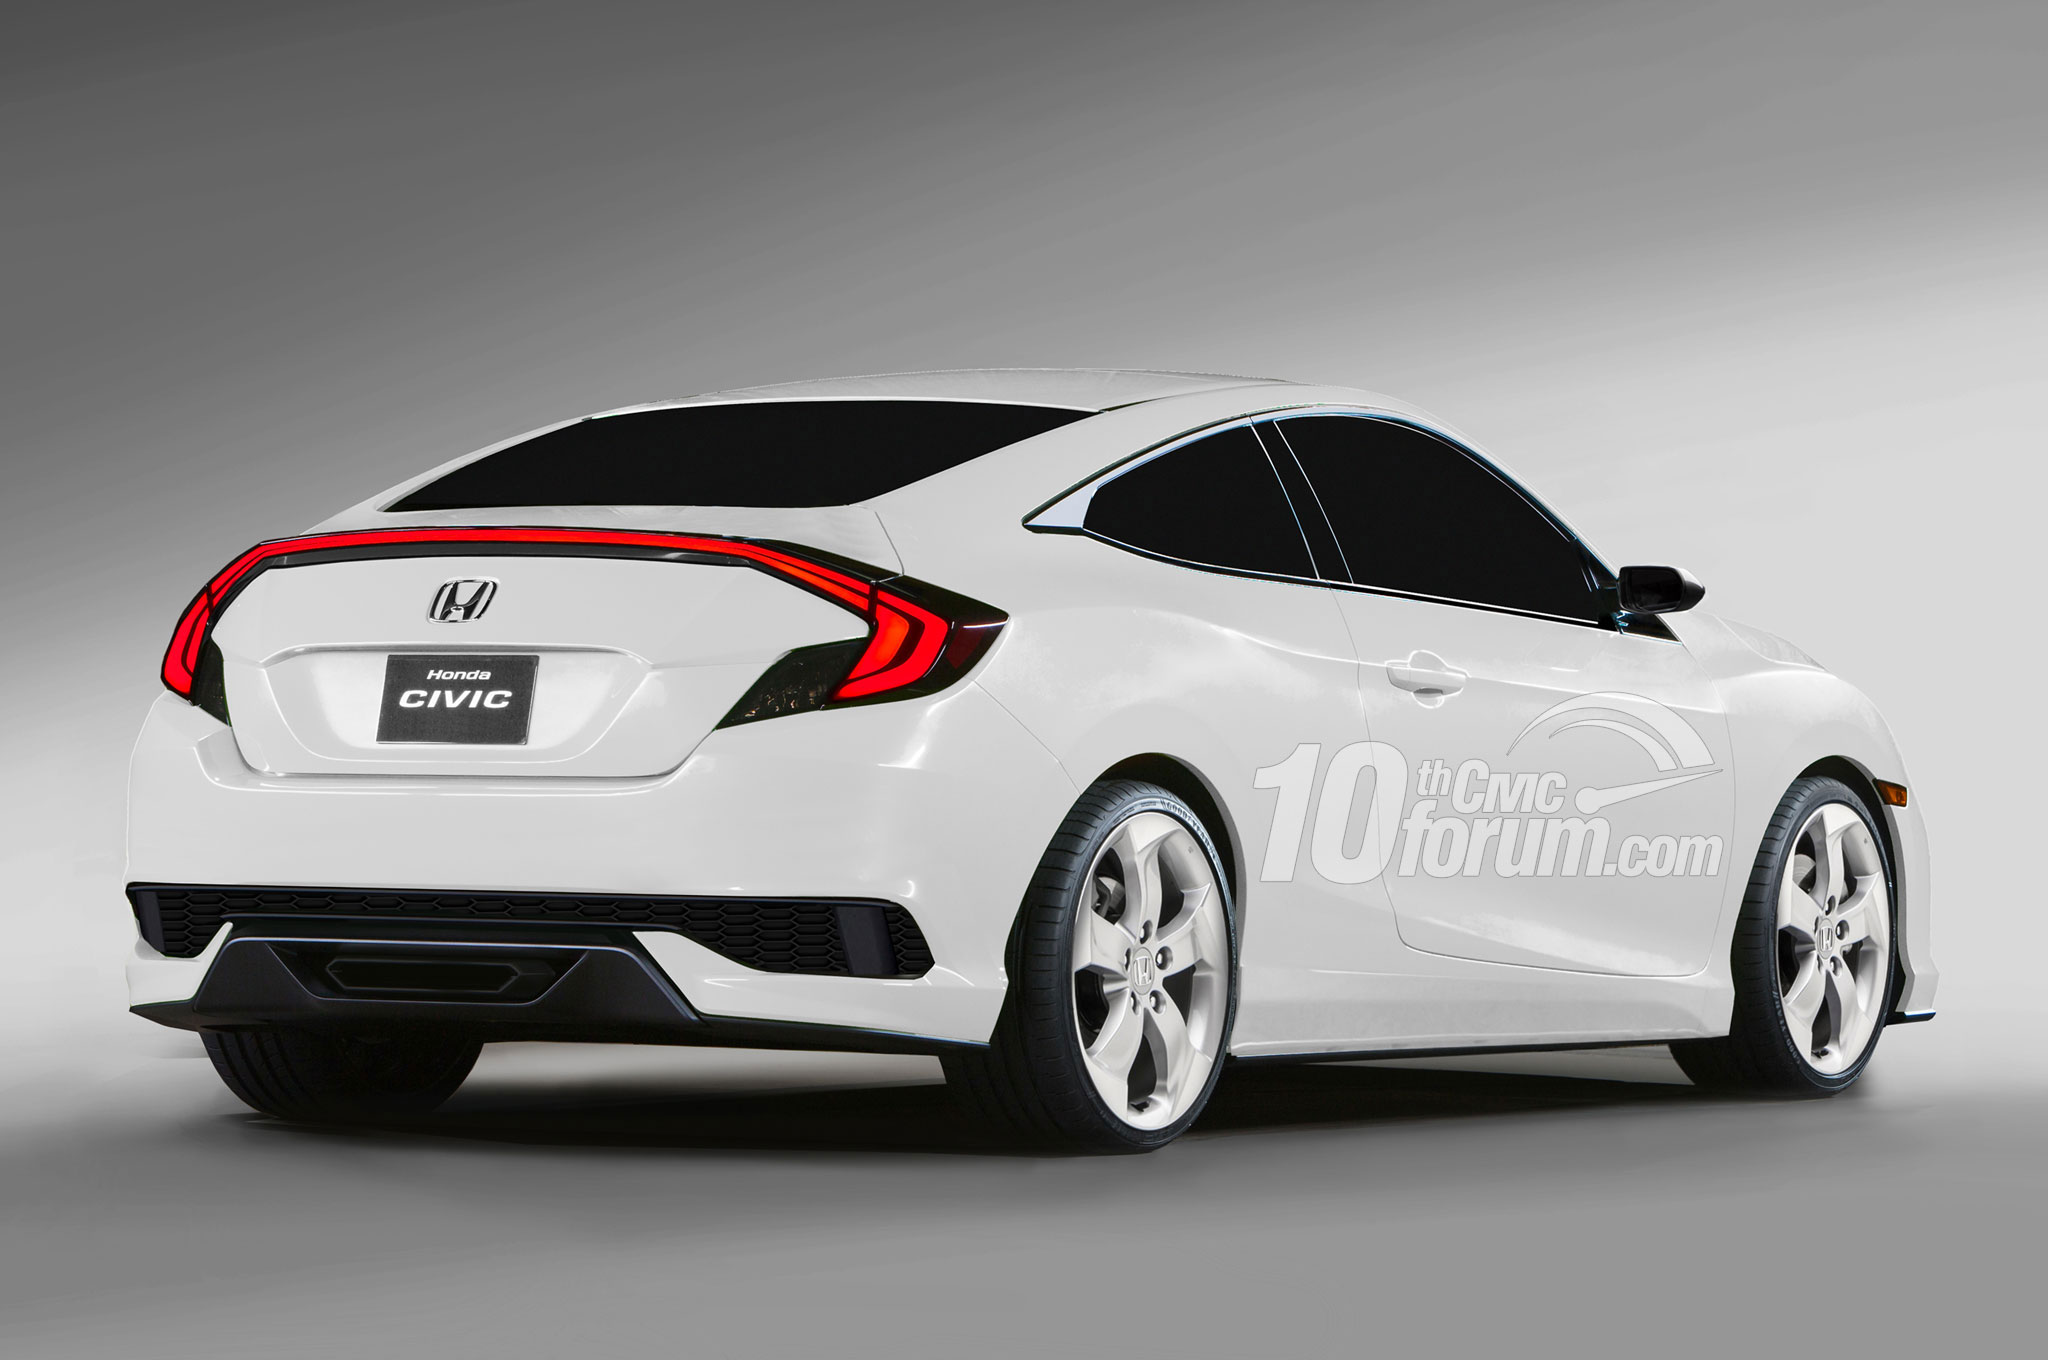 2016 honda civic coupe hatchback and sedan rendered news. Black Bedroom Furniture Sets. Home Design Ideas